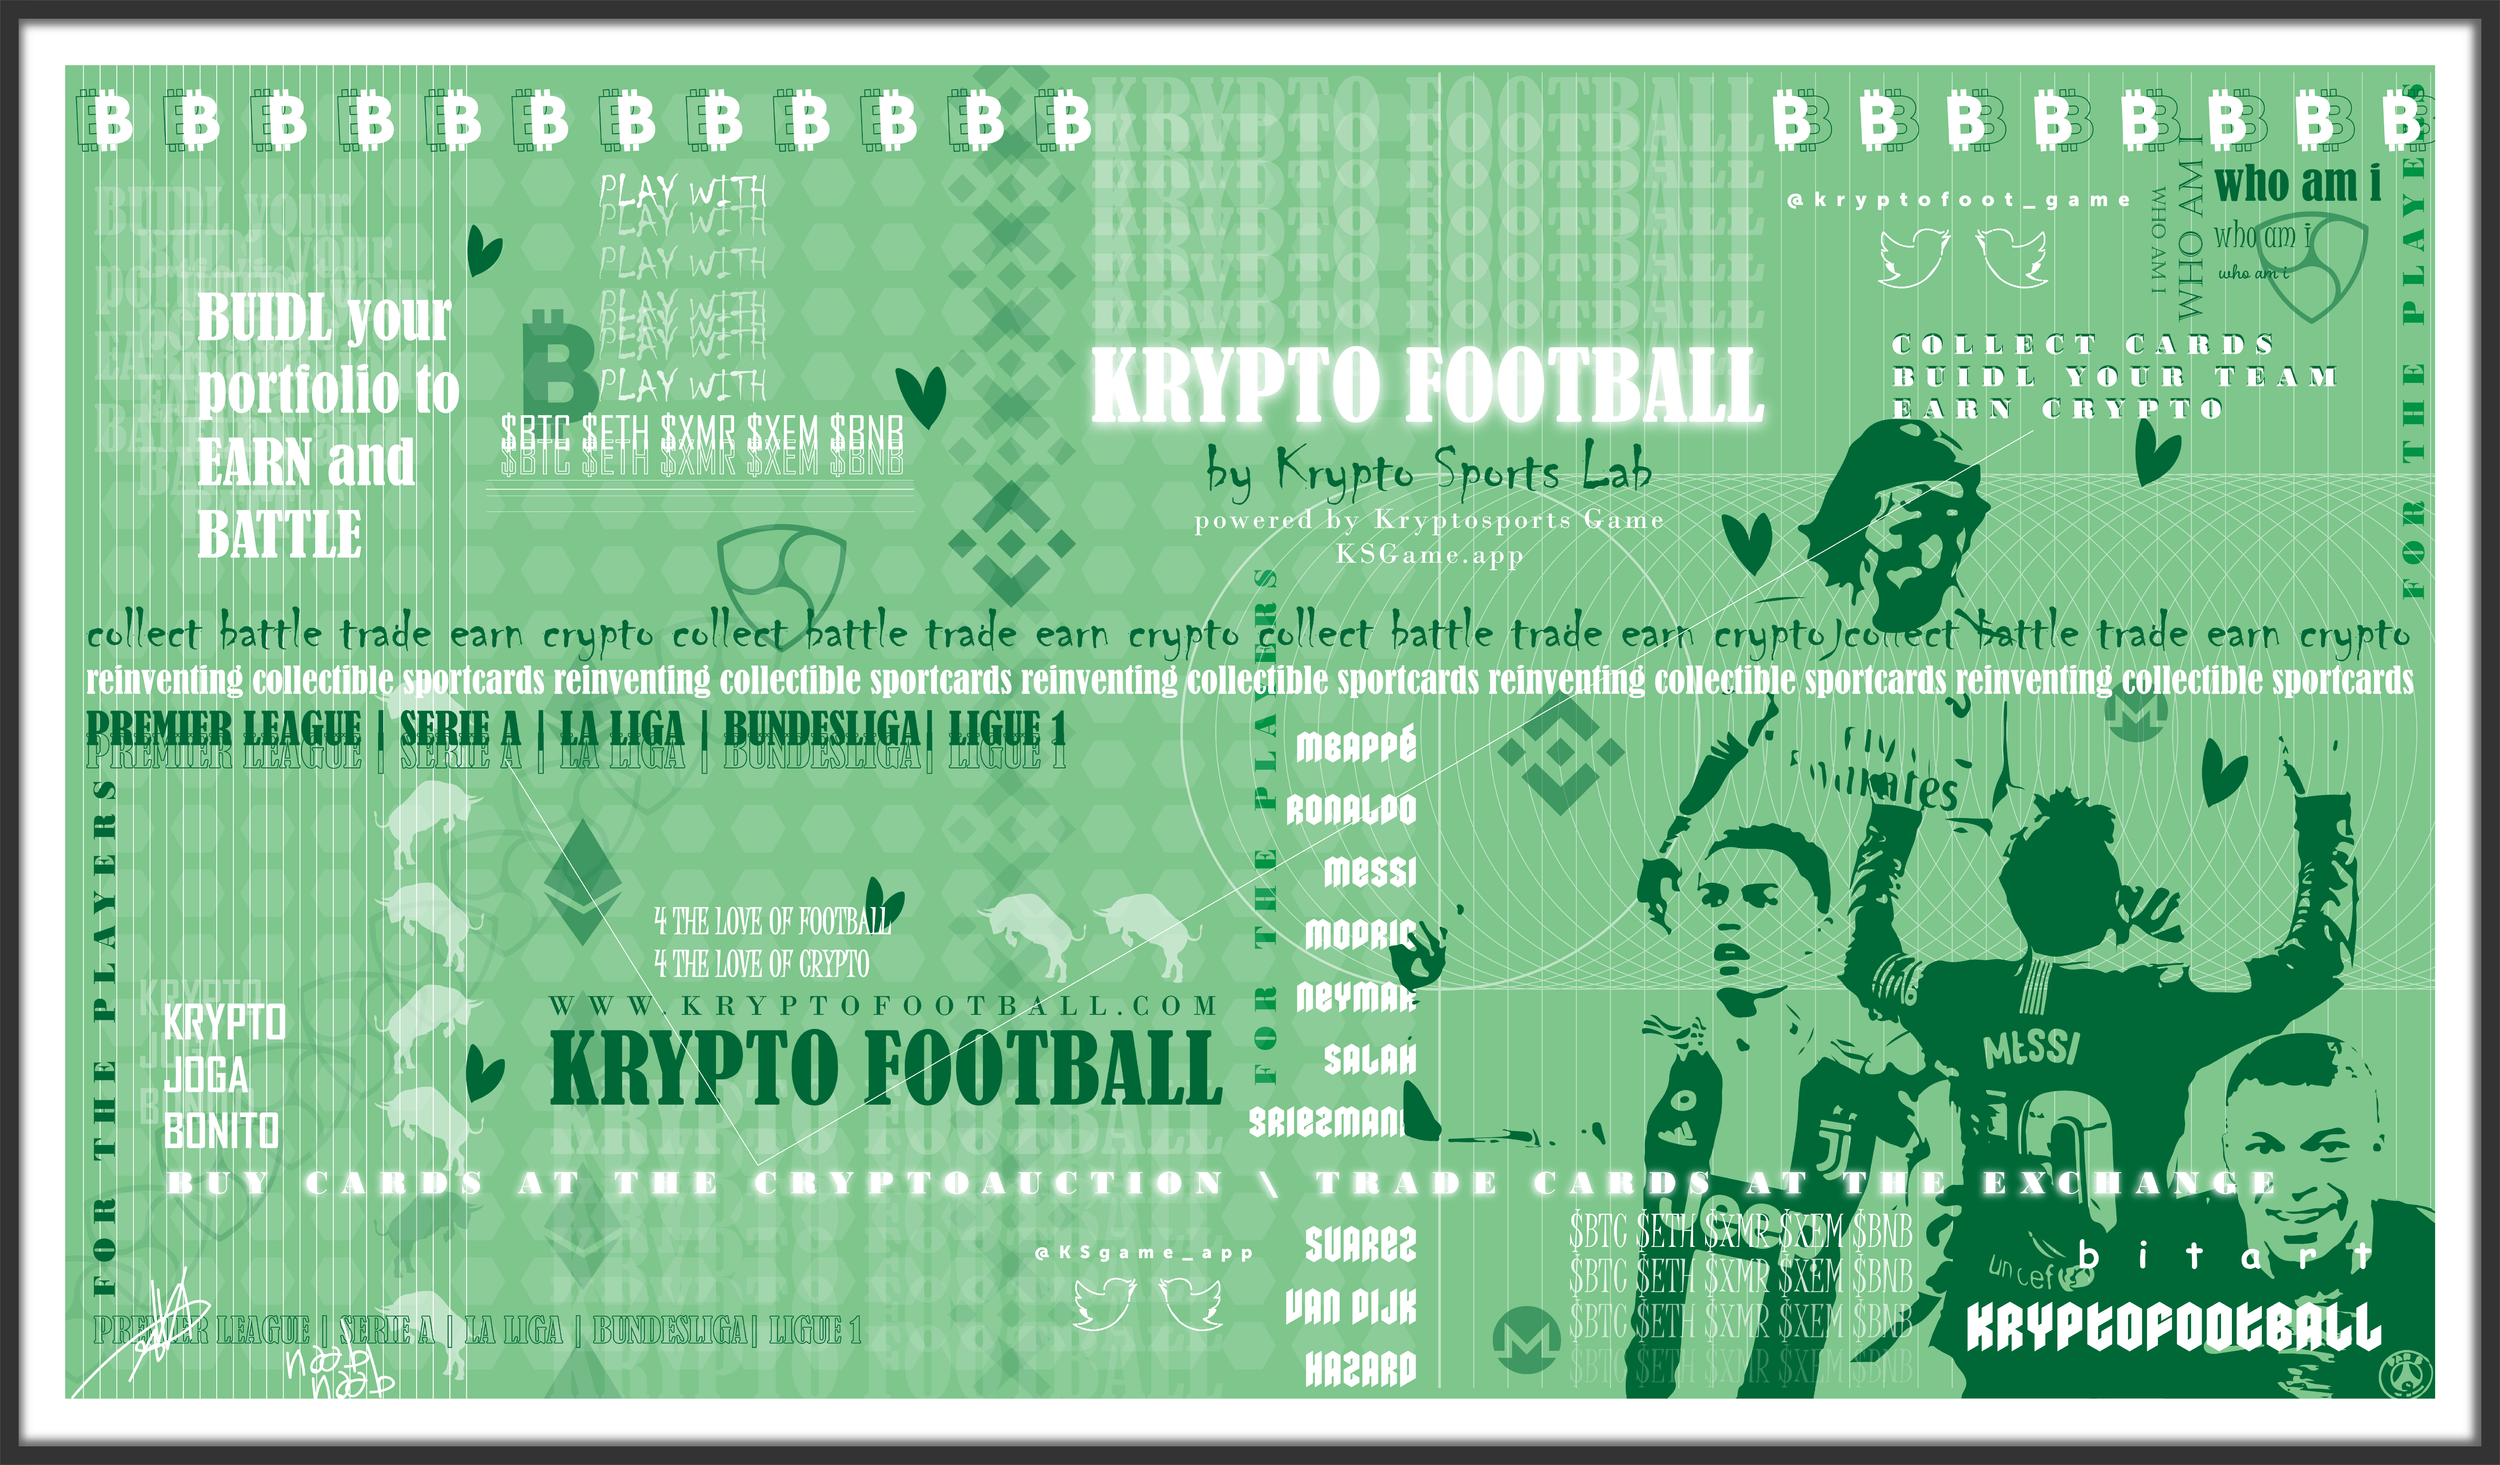 Kryptofootball